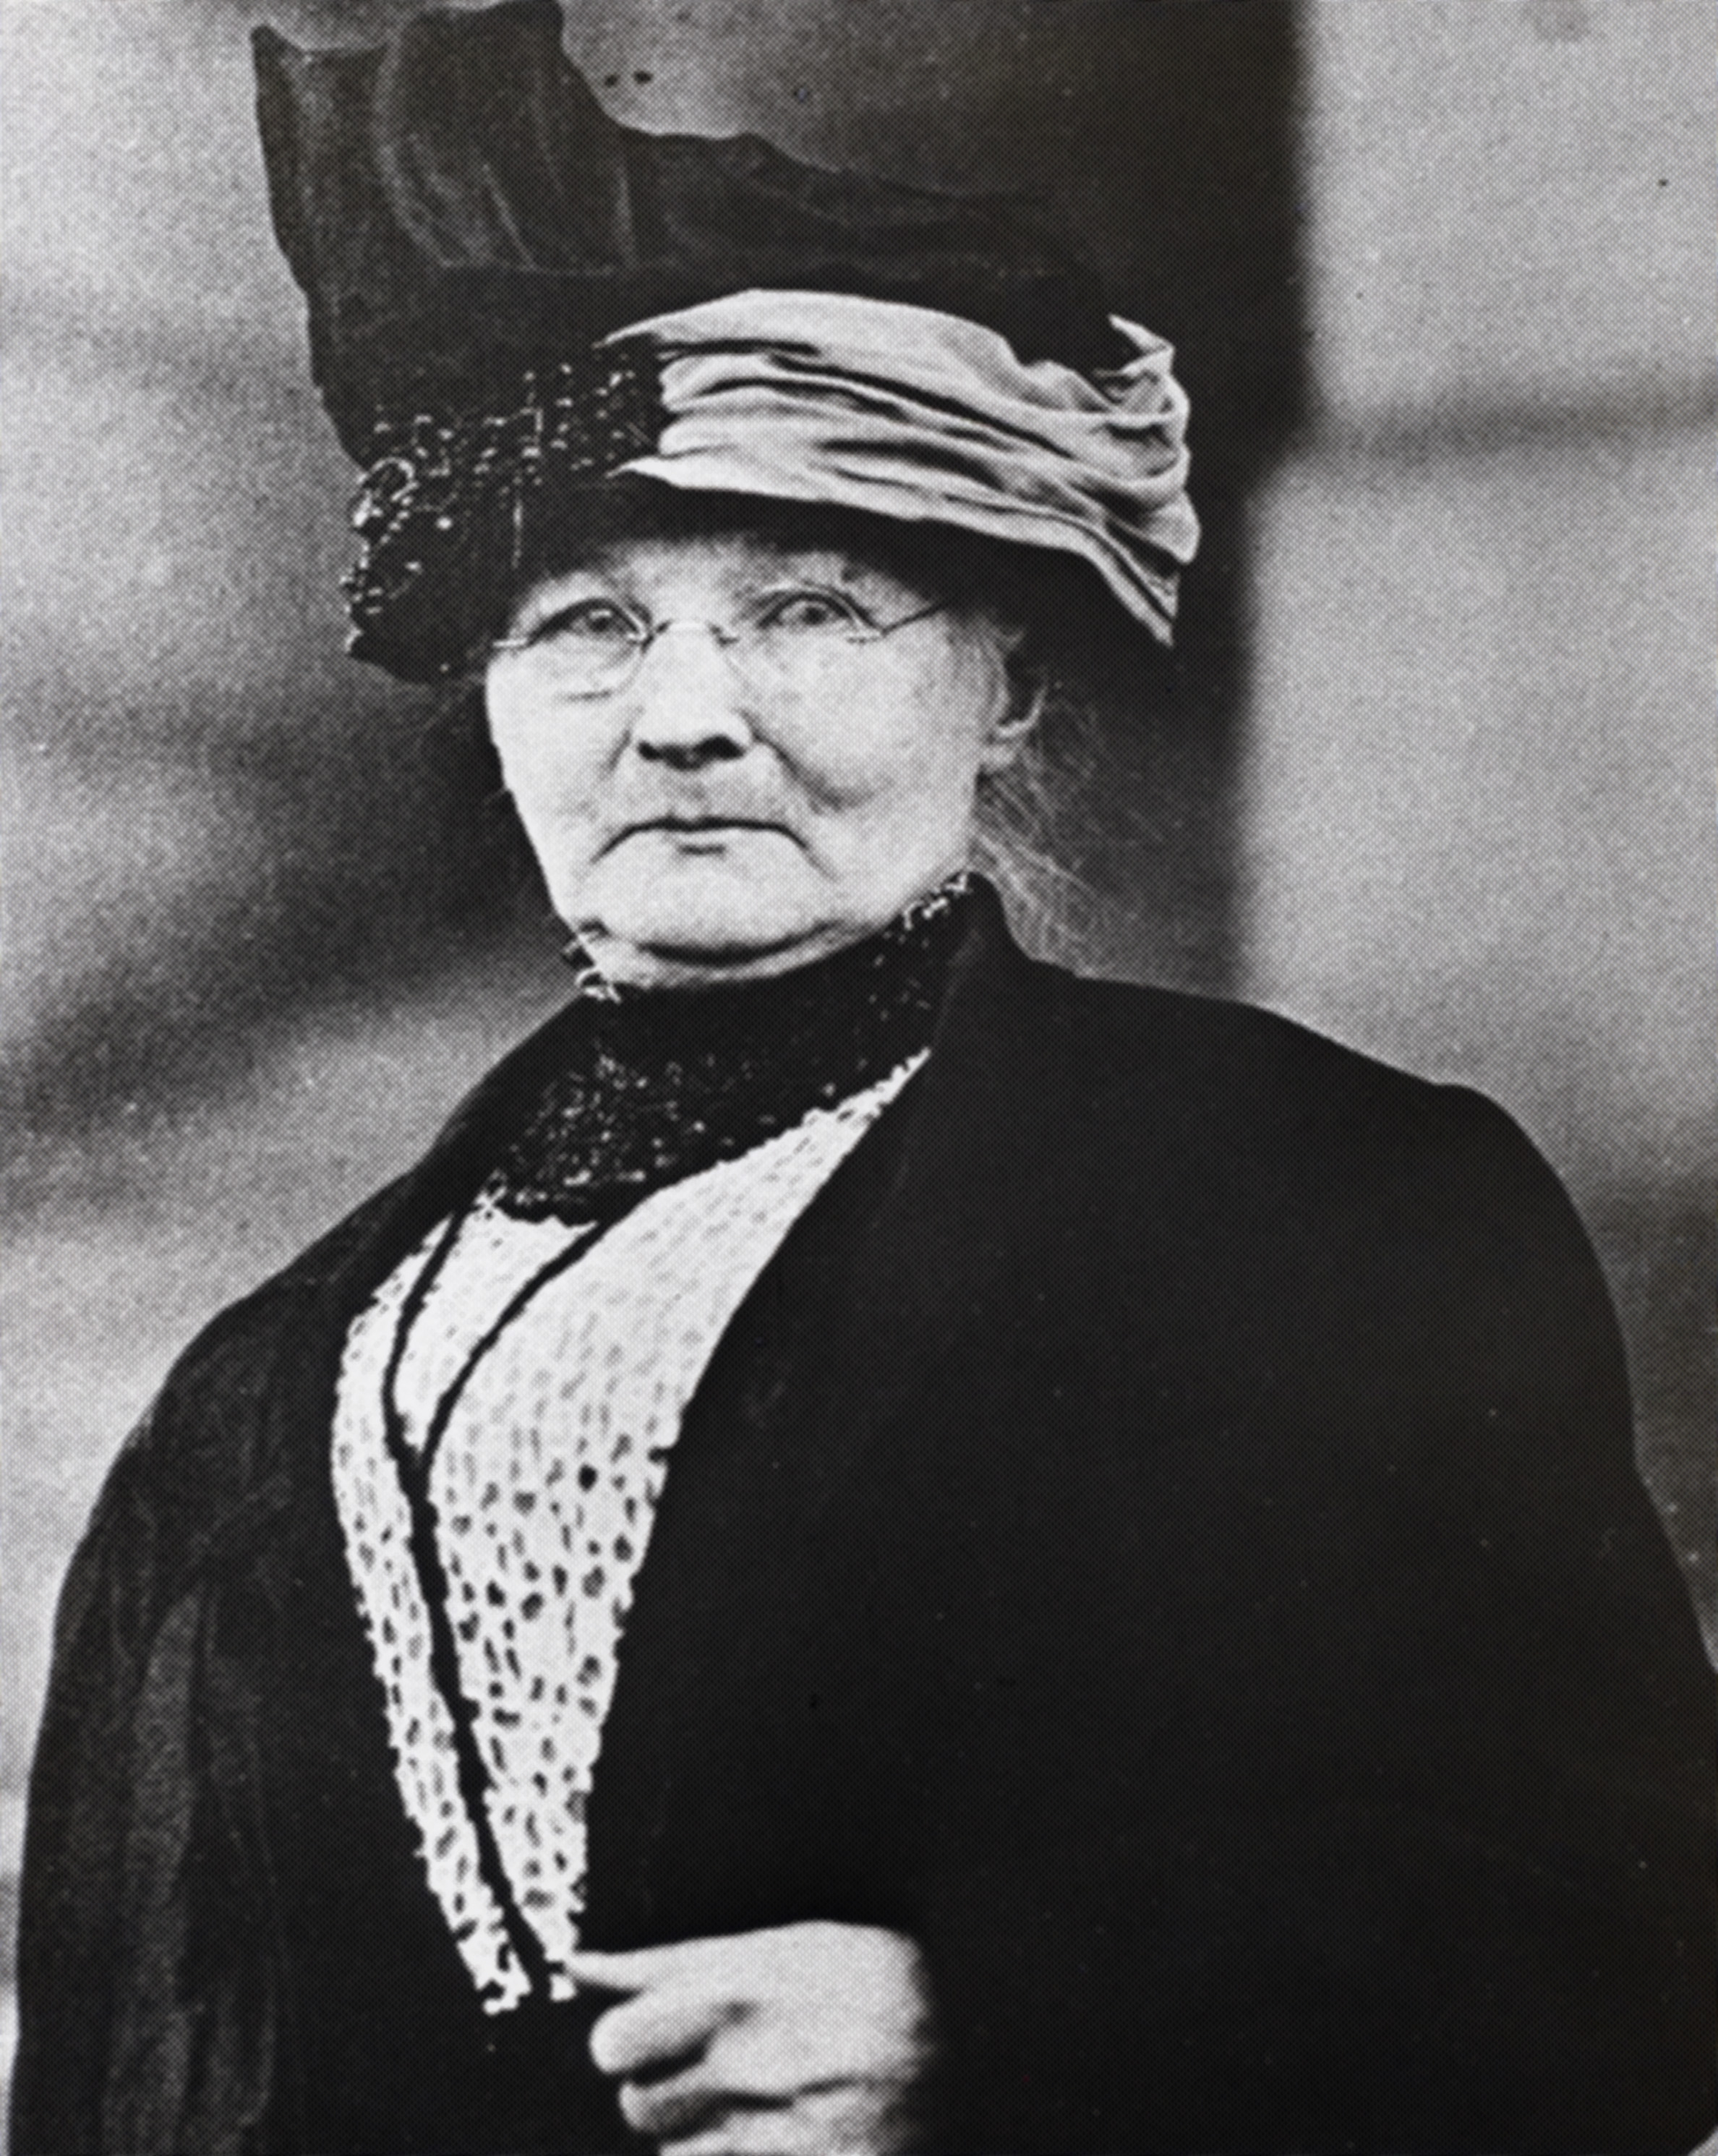 Mother Jones was an advocate for workers rights who spoke up for those who couldn't.